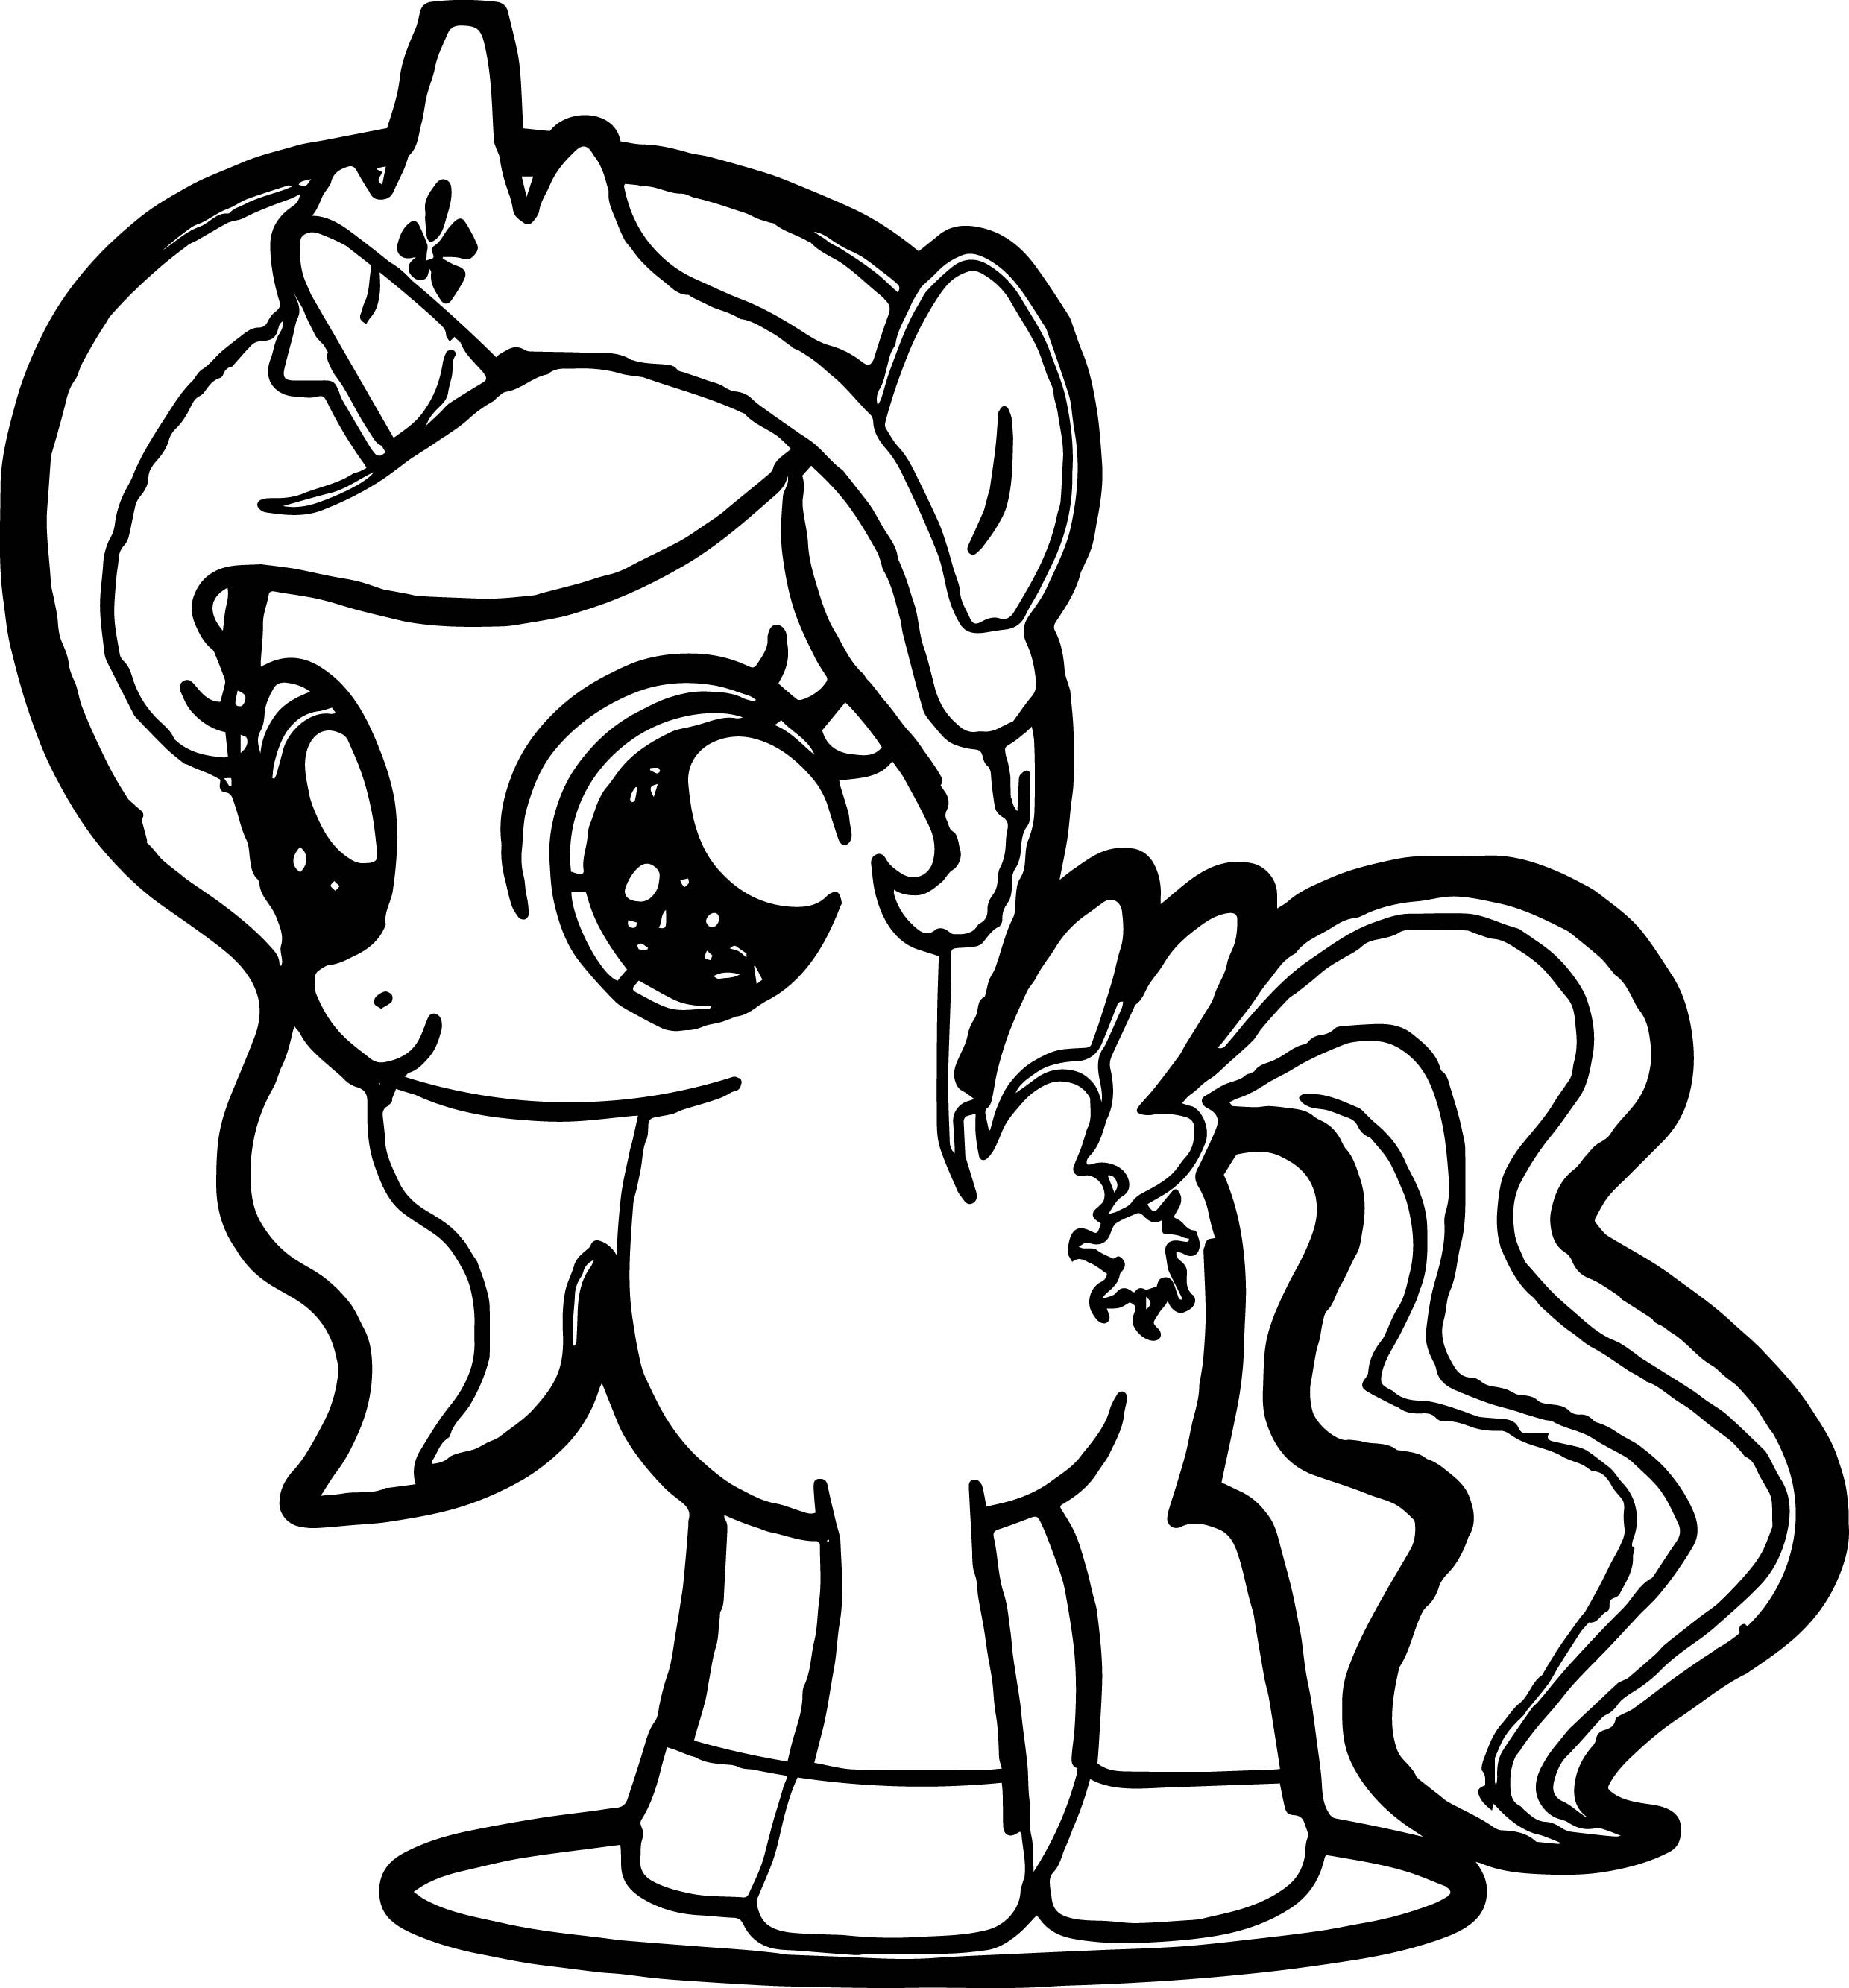 pony to color fluttershy coloring pages best coloring pages for kids to color pony